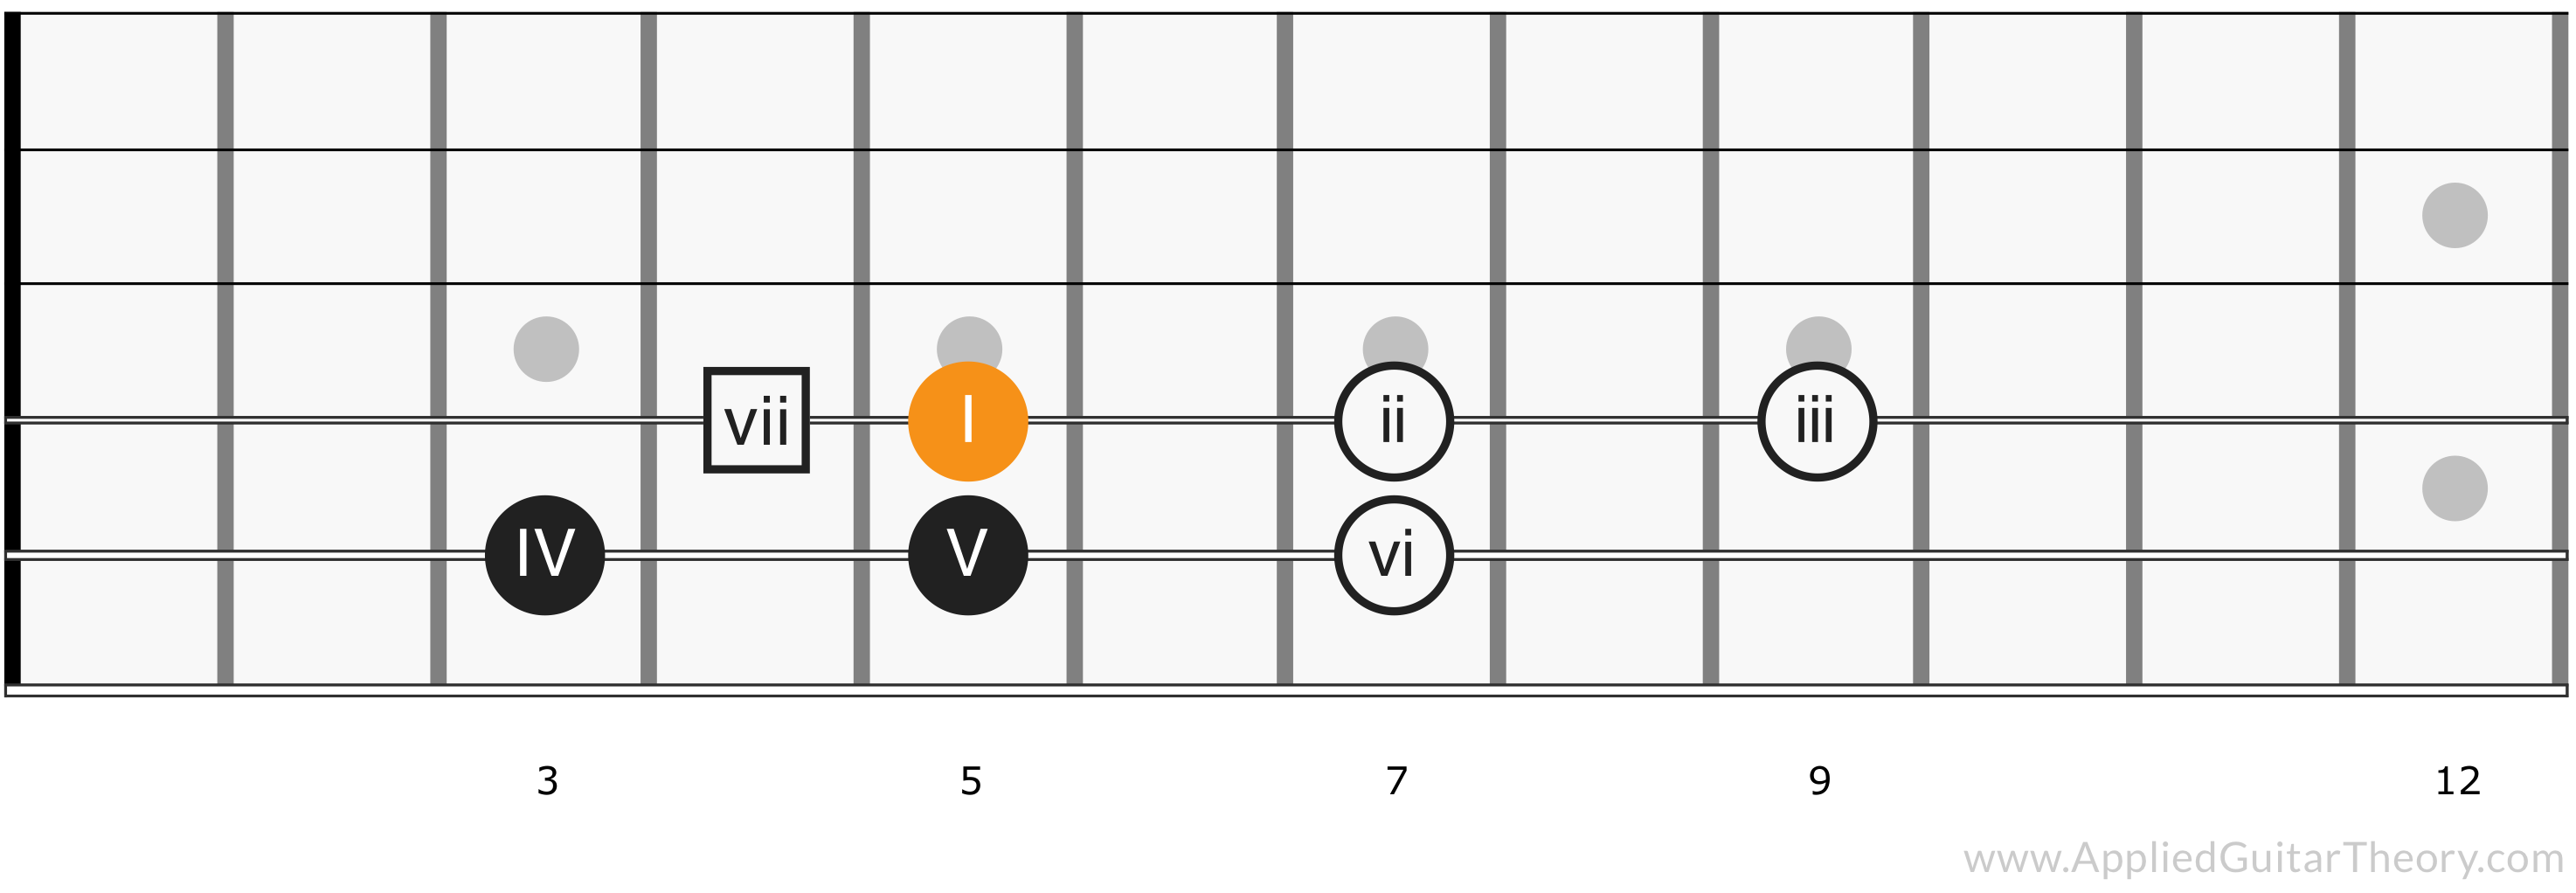 Major Scale Chord Positions - Root 4